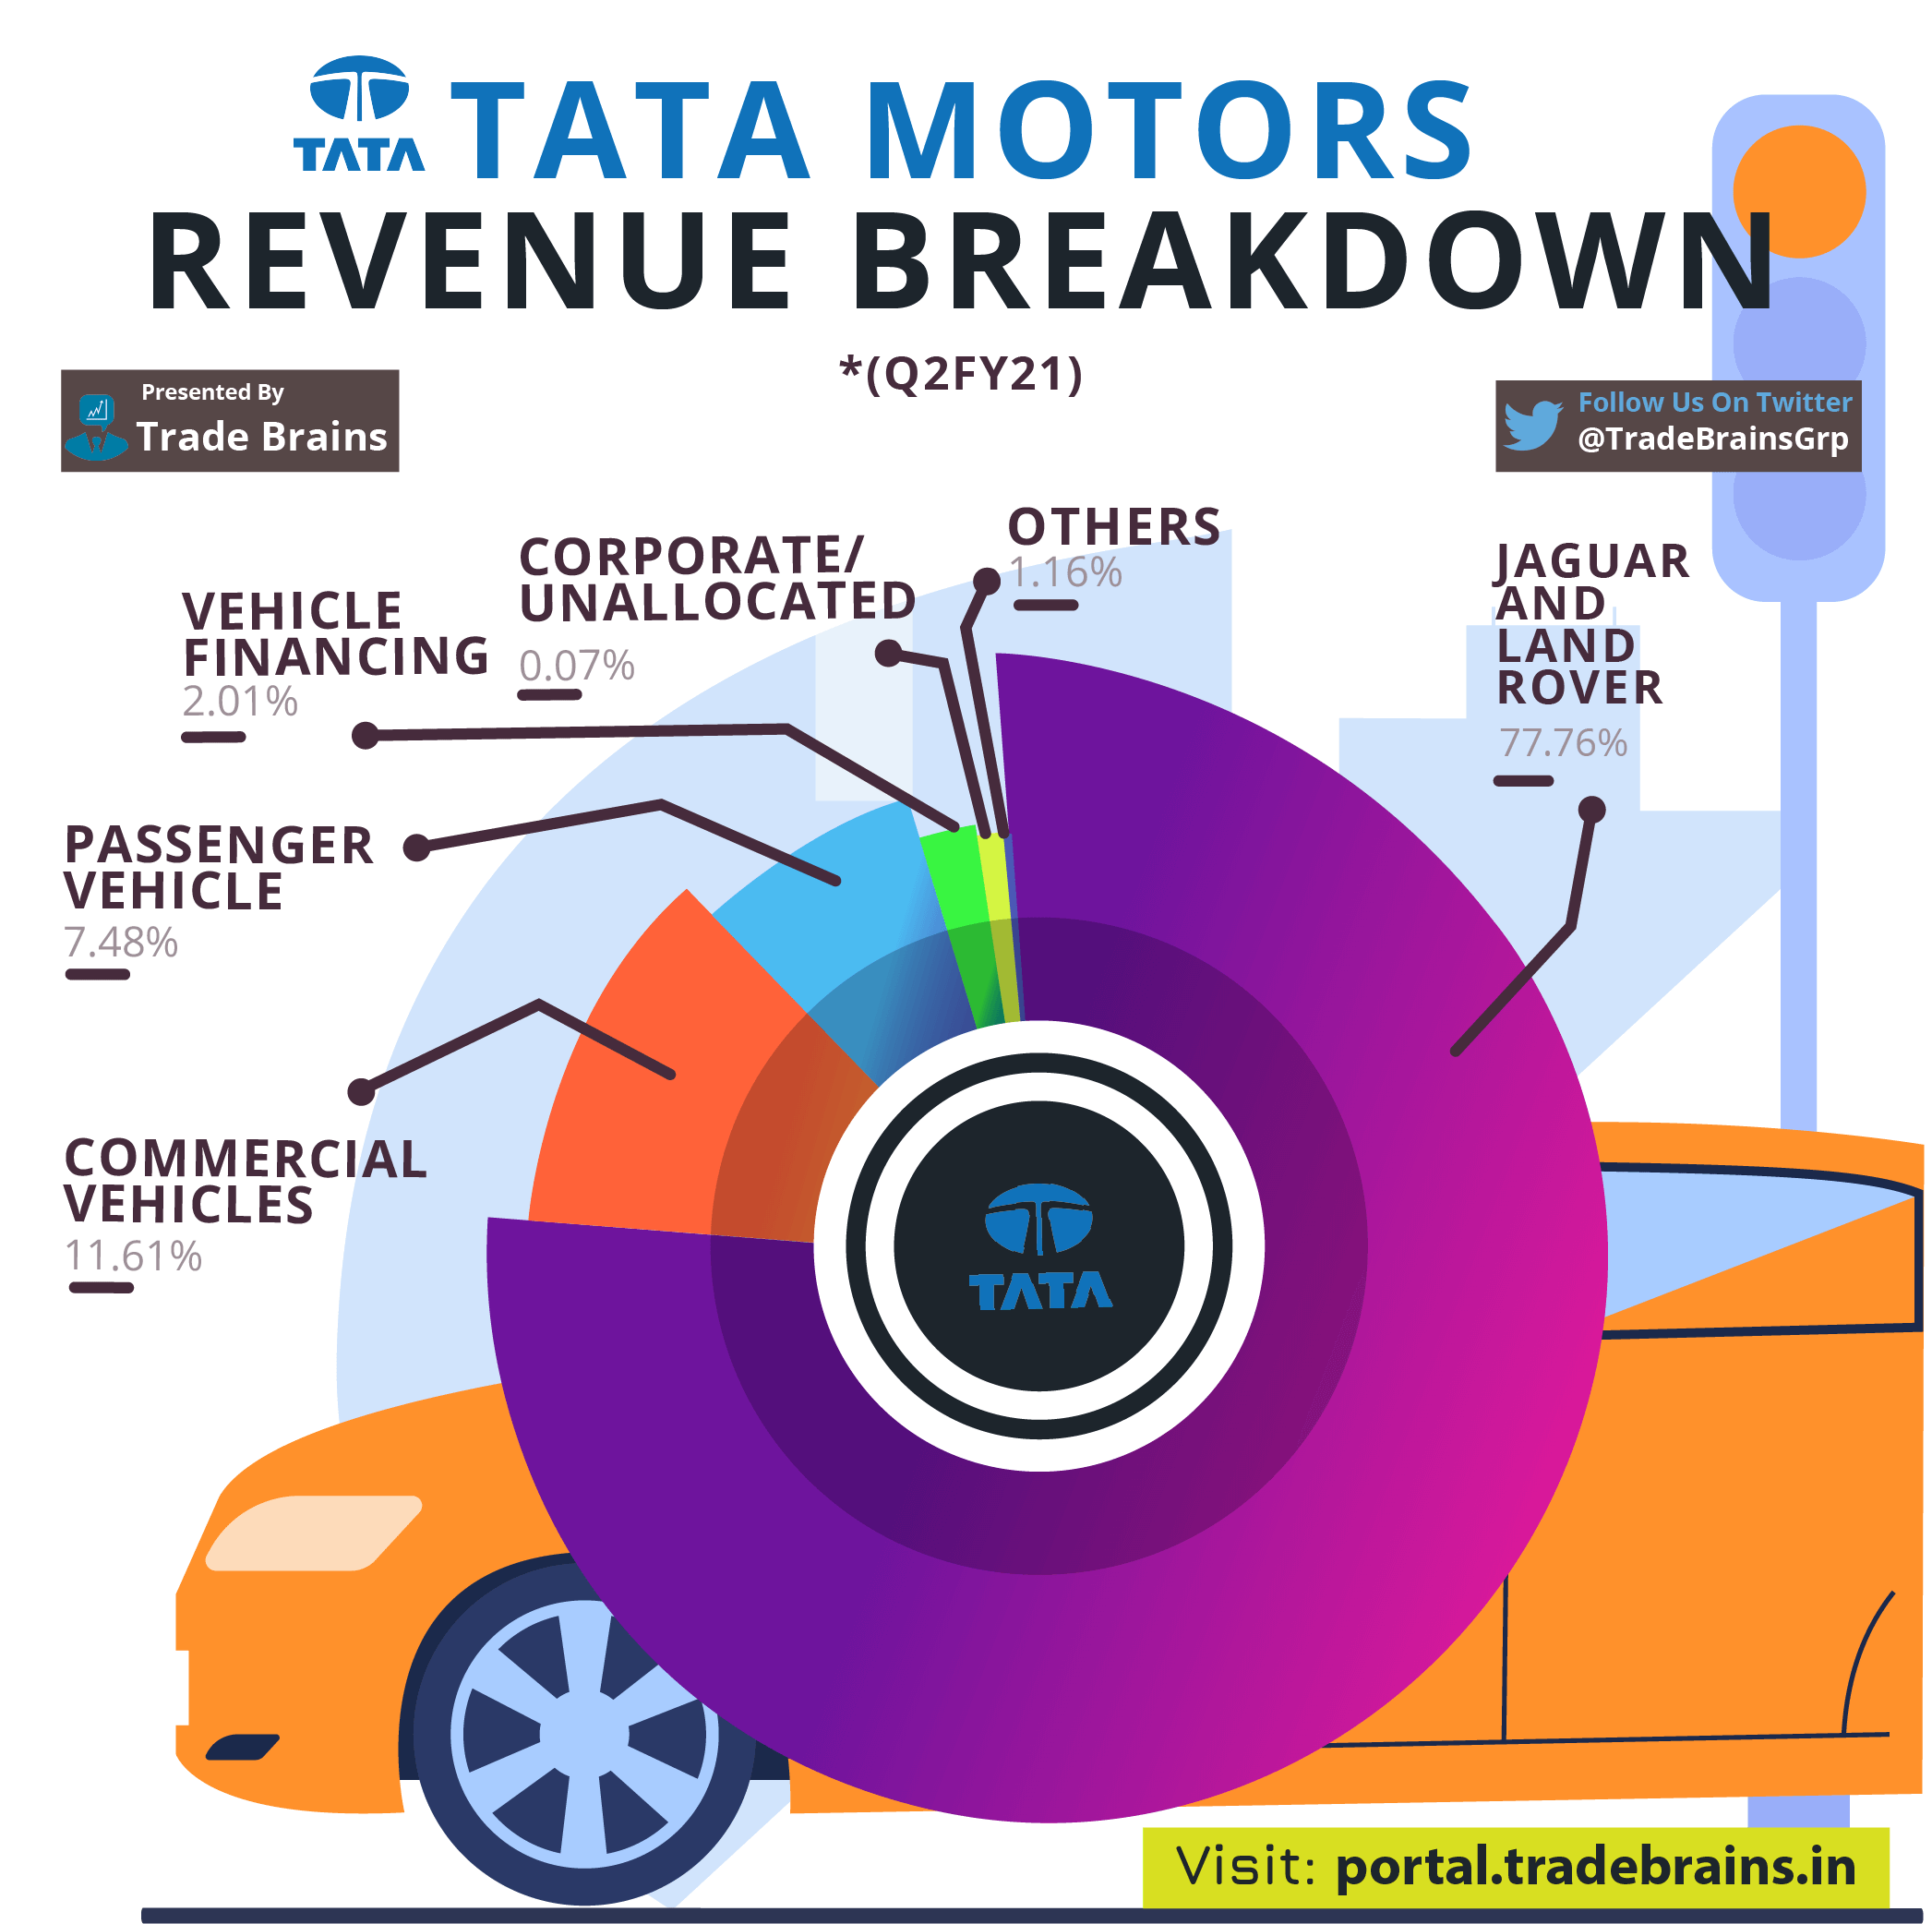 TATA MOTORS REVENUE FINANCING Q2FY21